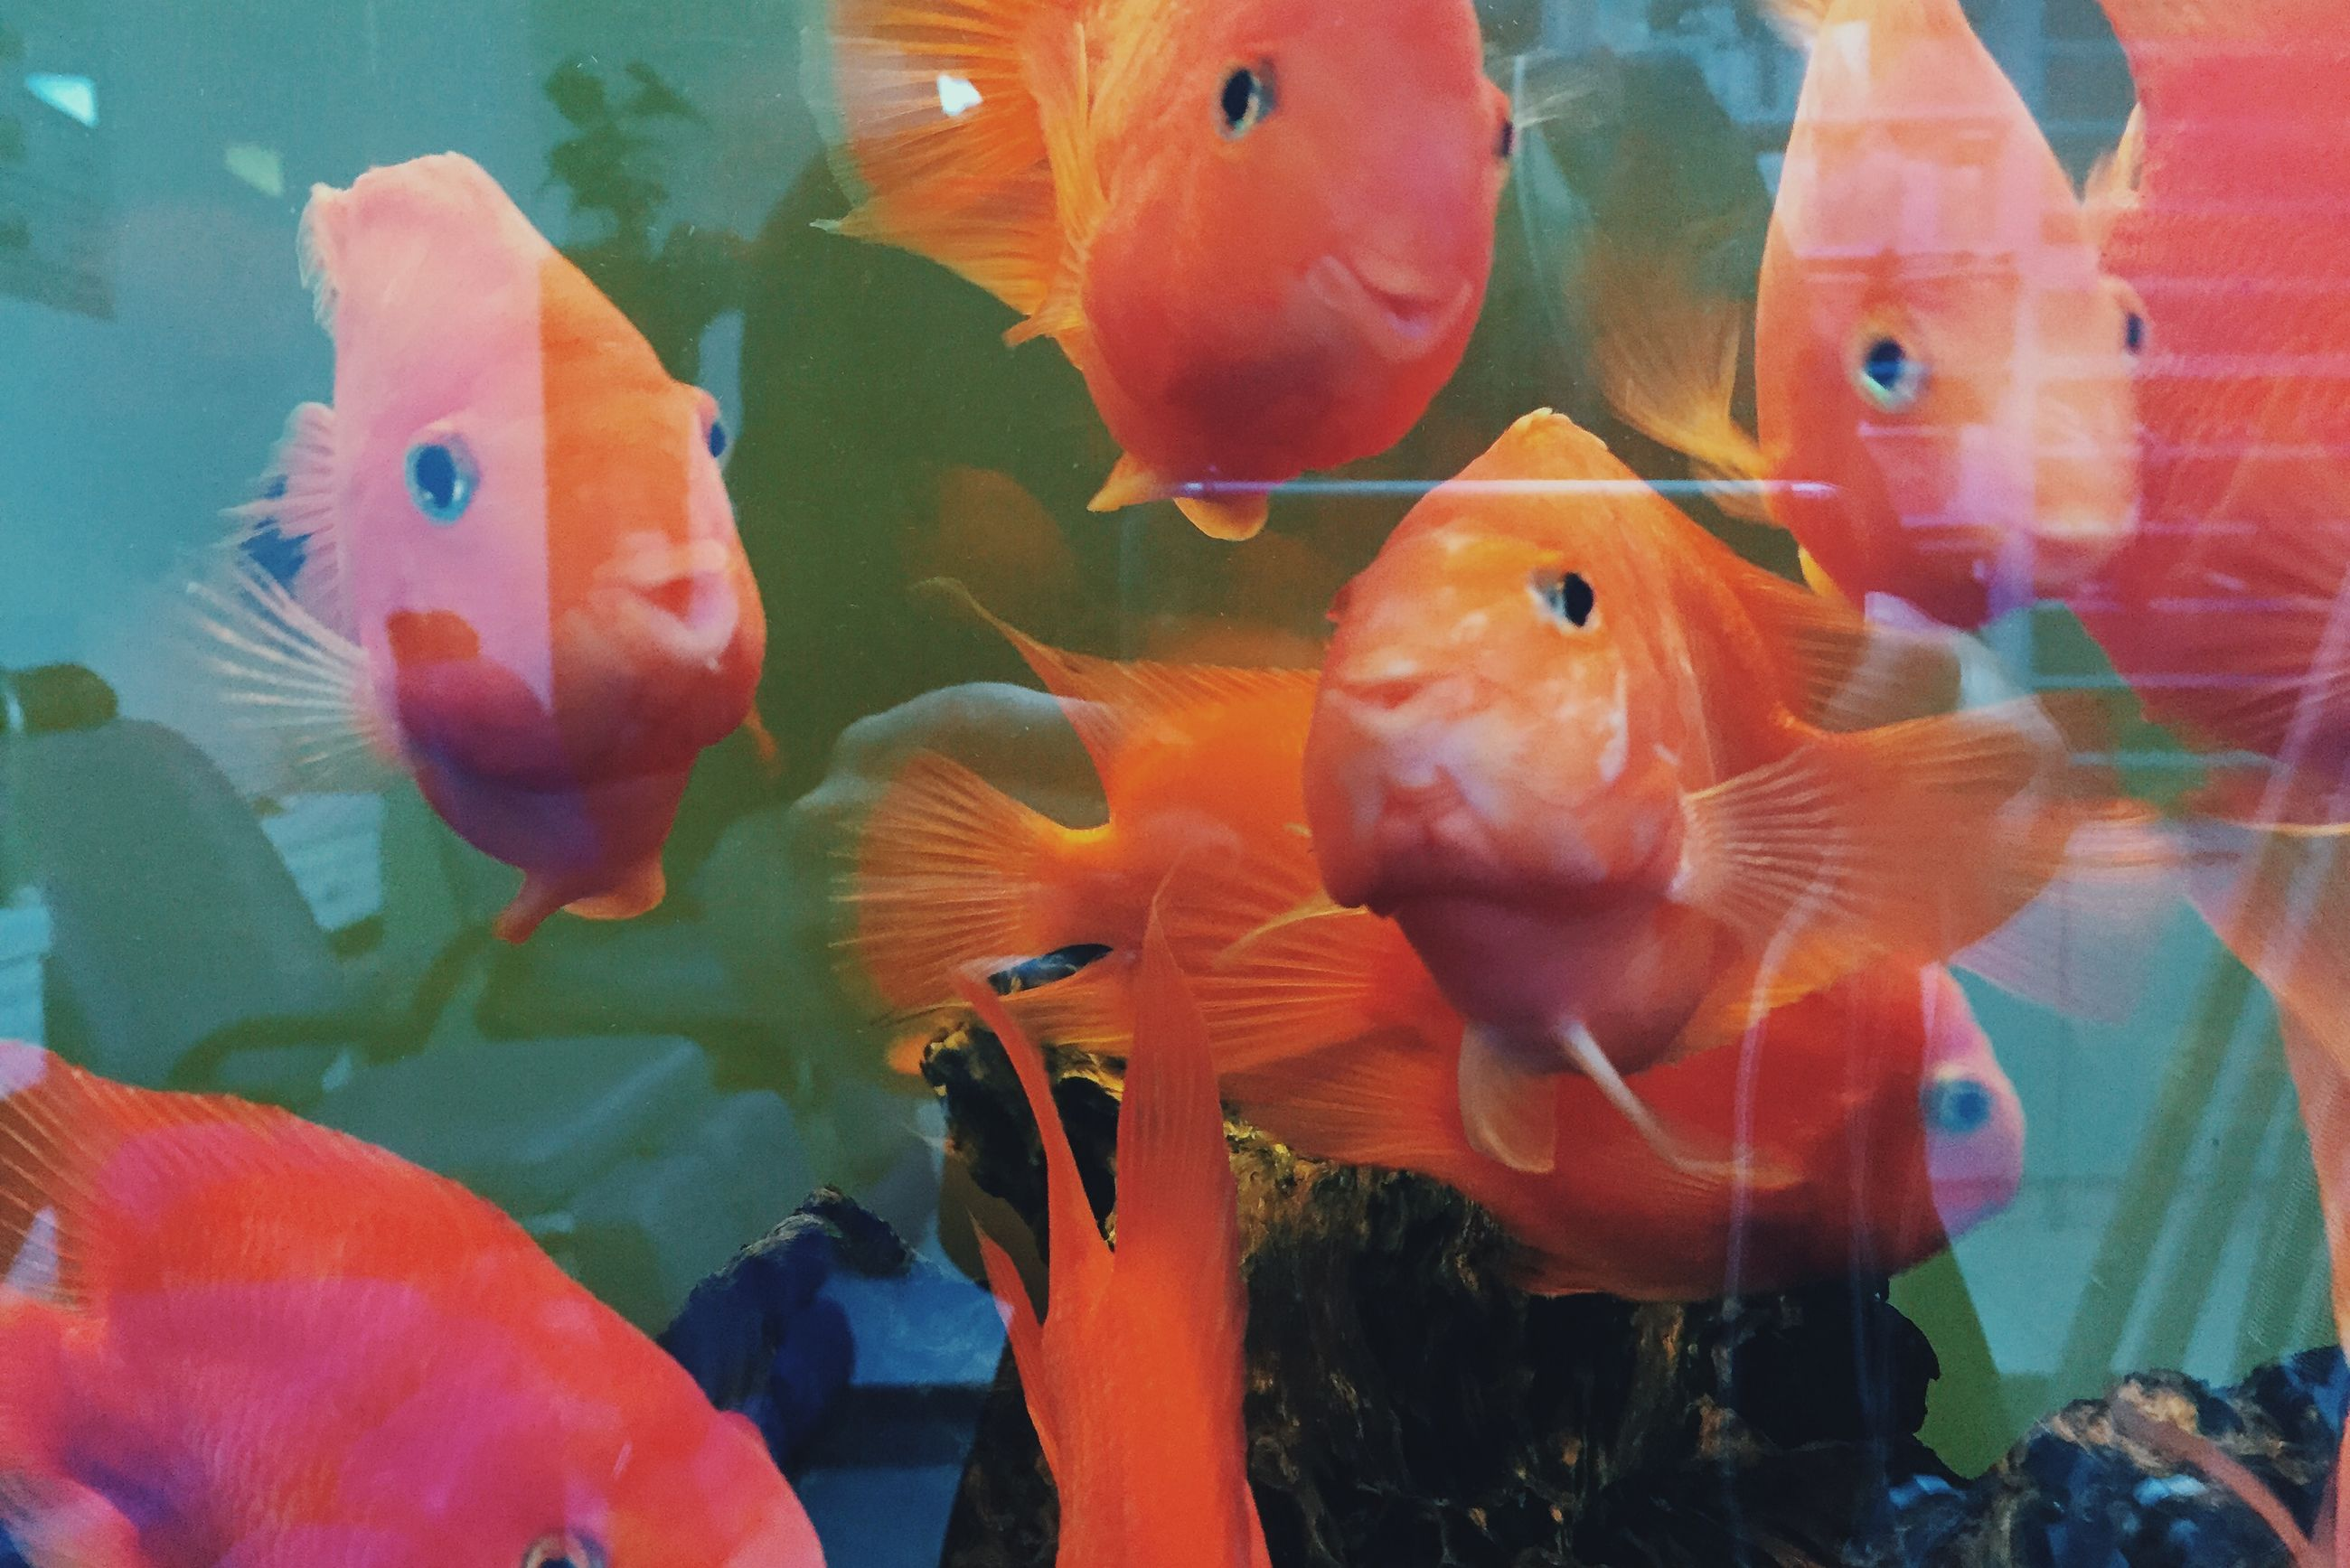 animal themes, animals in the wild, wildlife, bird, orange color, swimming, fish, water, nature, close-up, flamingo, beauty in nature, underwater, two animals, multi colored, medium group of animals, animals in captivity, sea life, fish tank